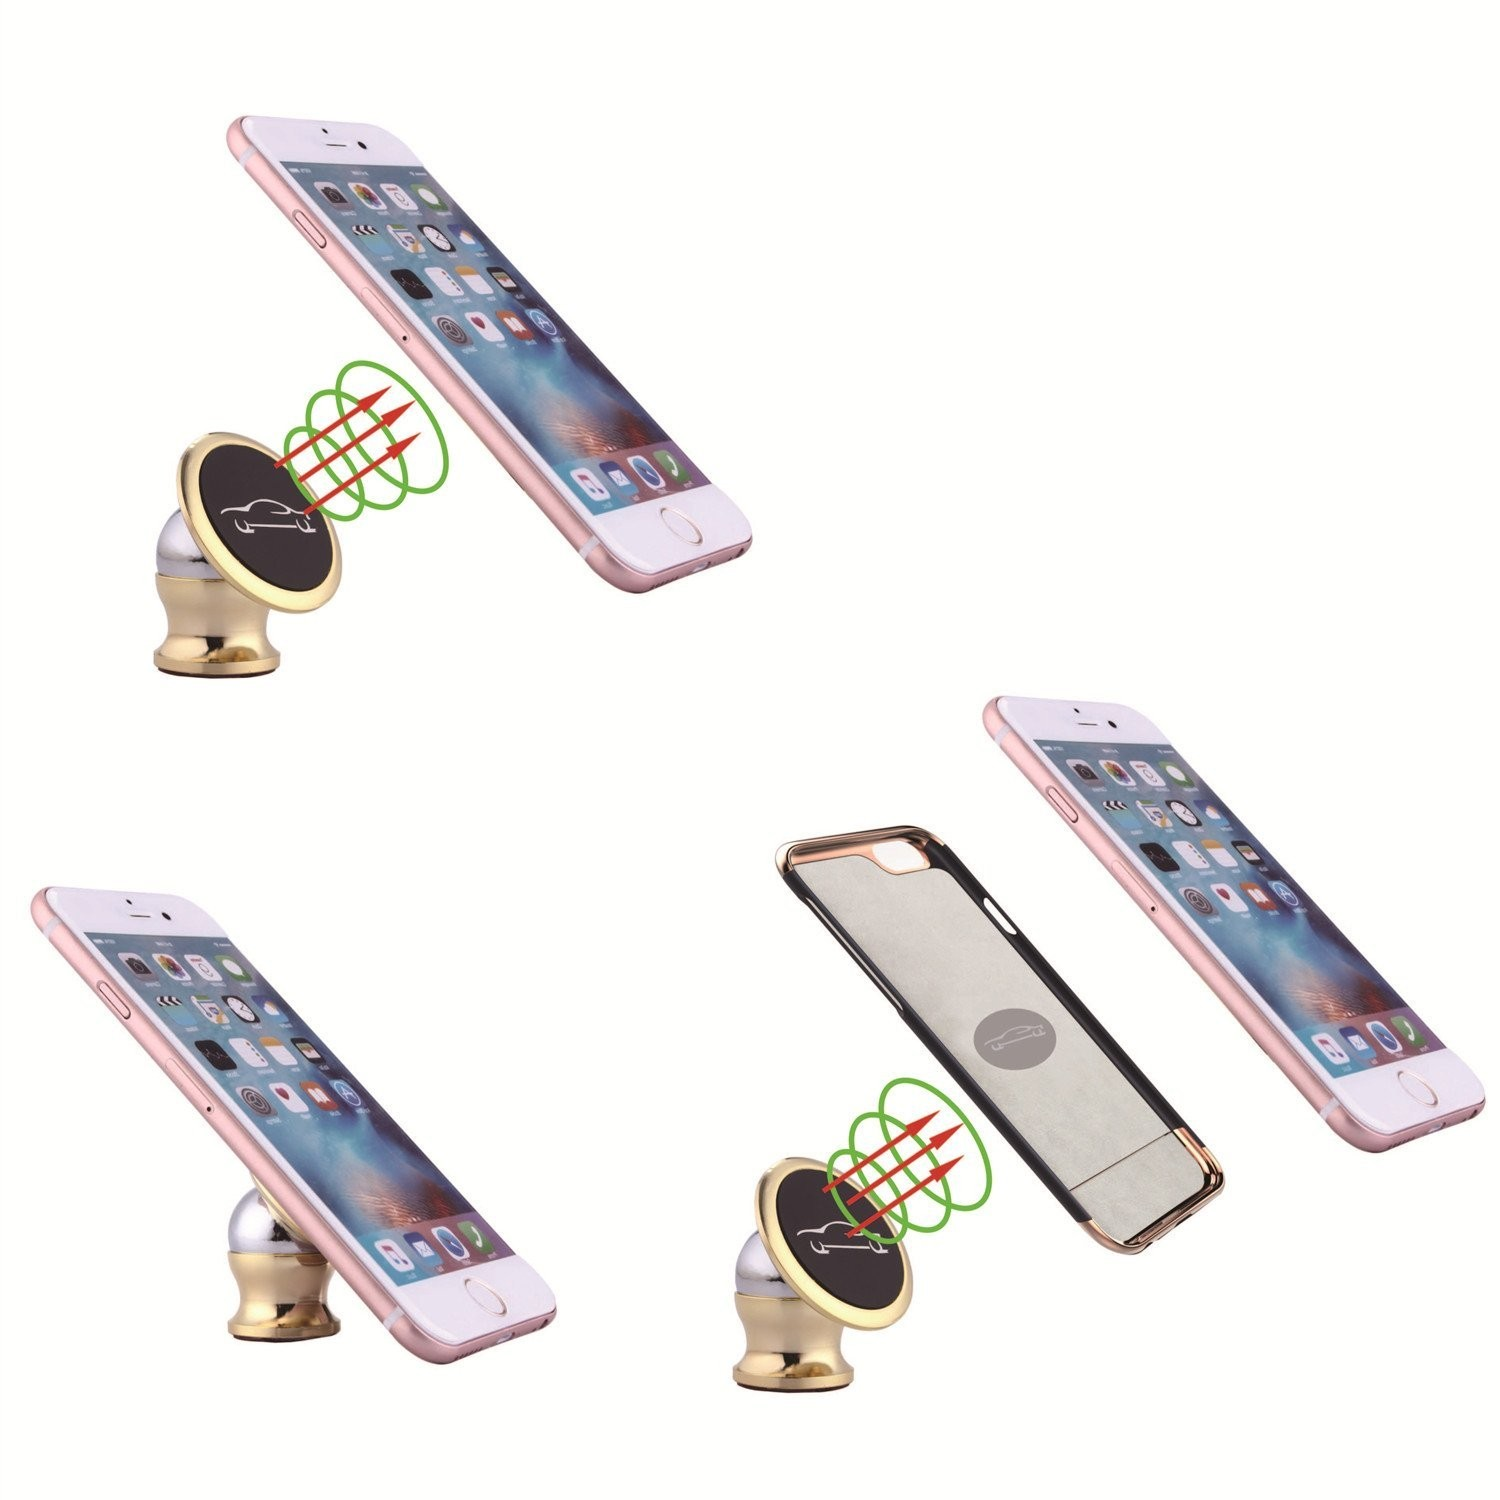 Best magnetic car mount for iphone 6 plus